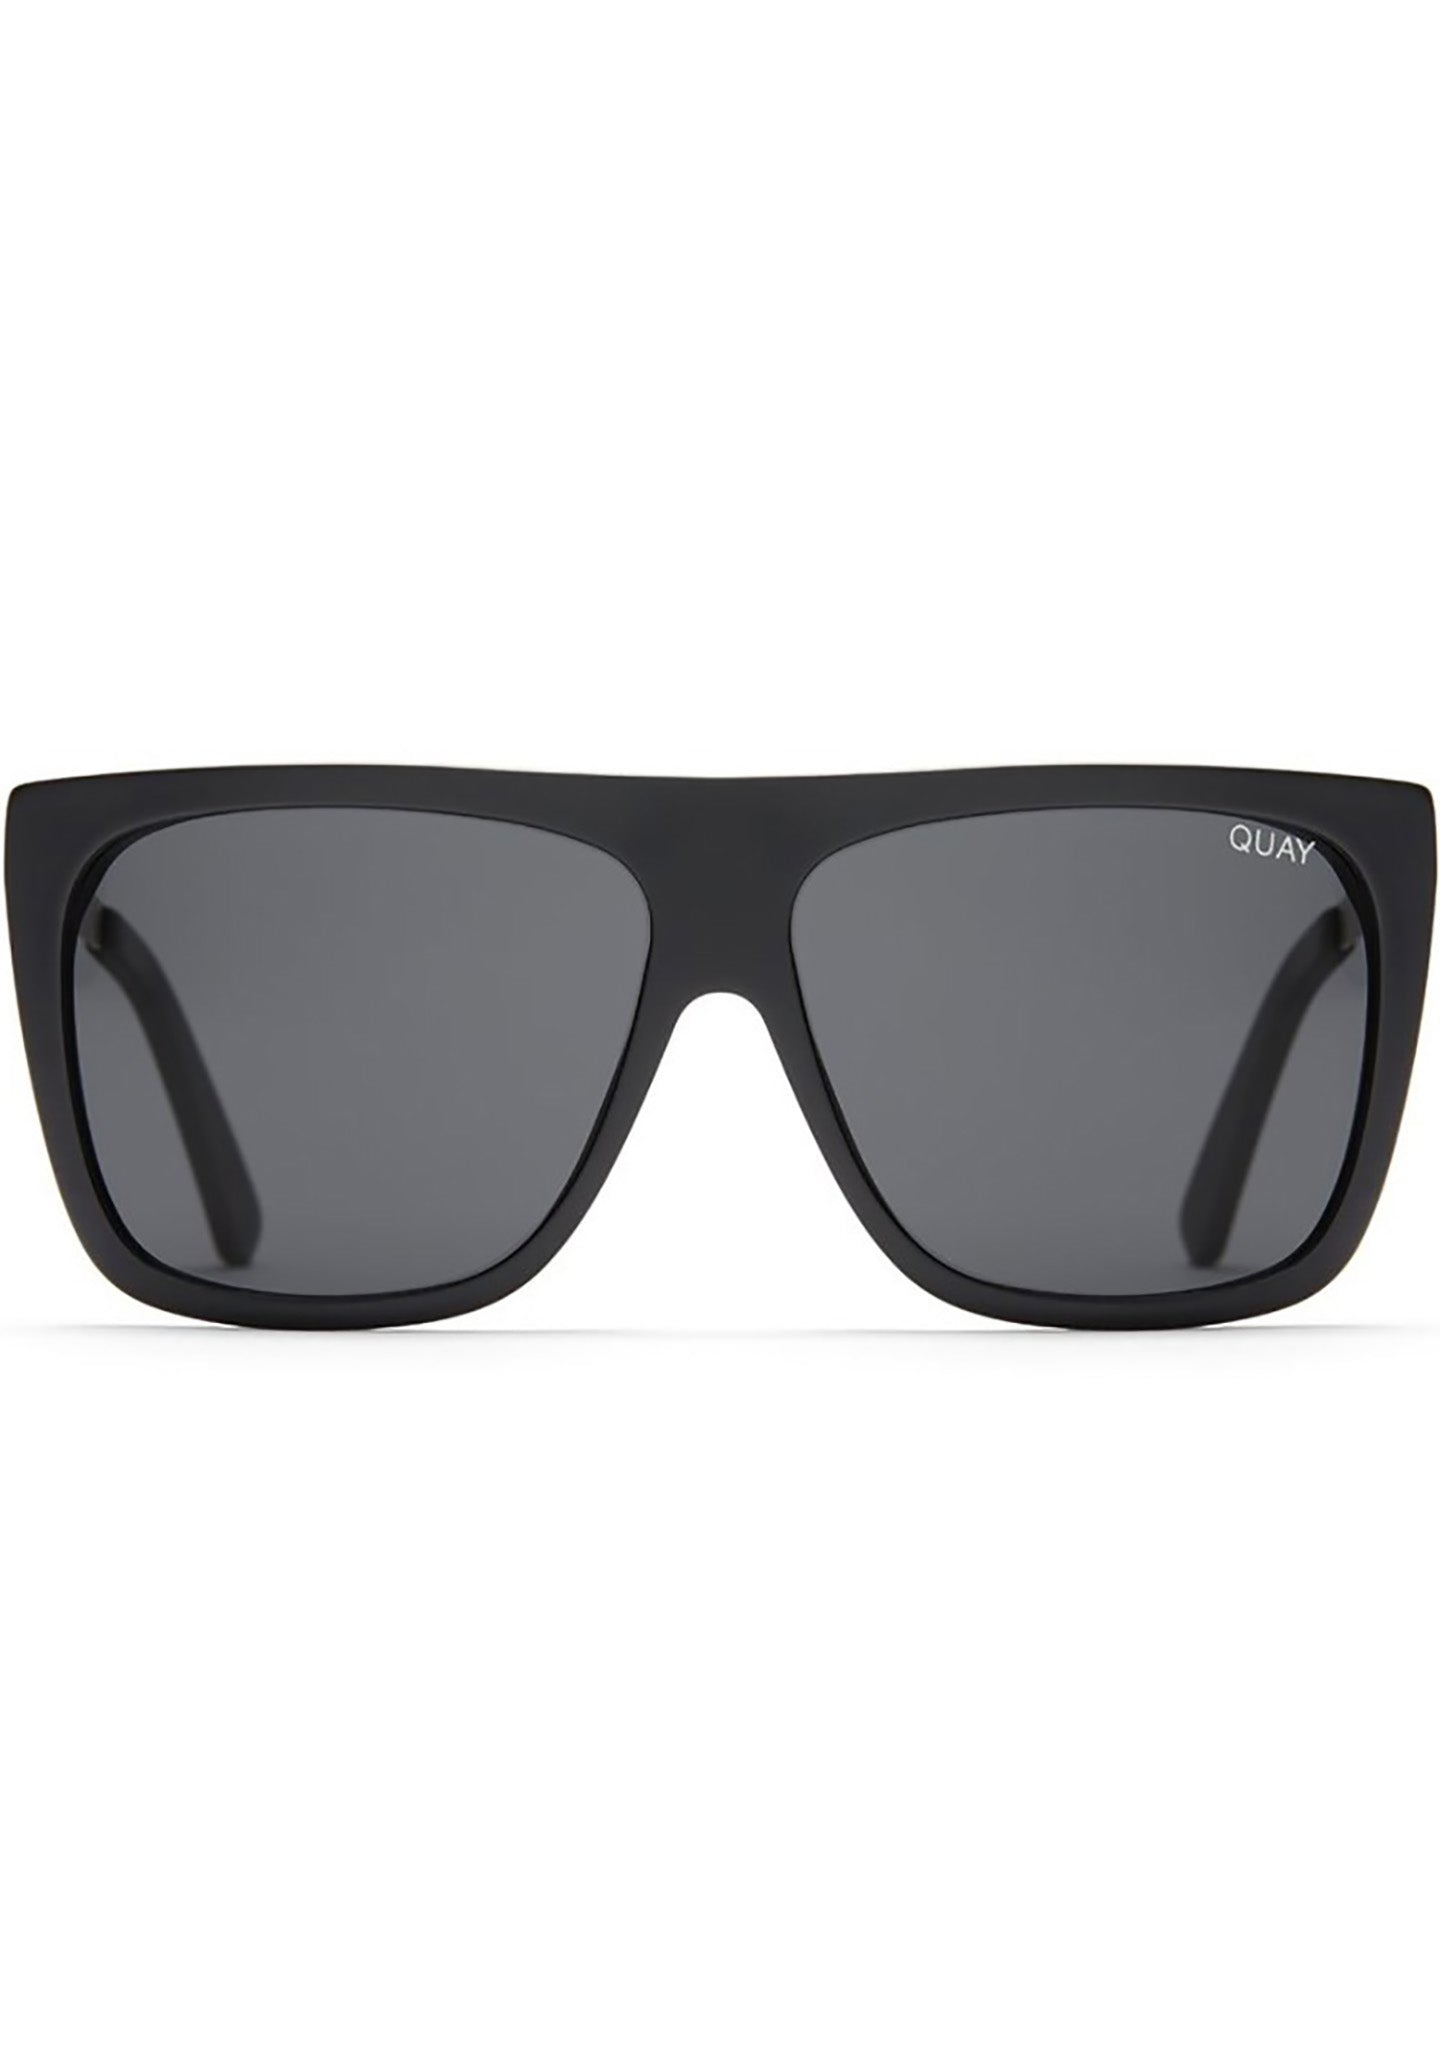 Quay Australia X Desi Perkins On the Low II Sunglasses in Black